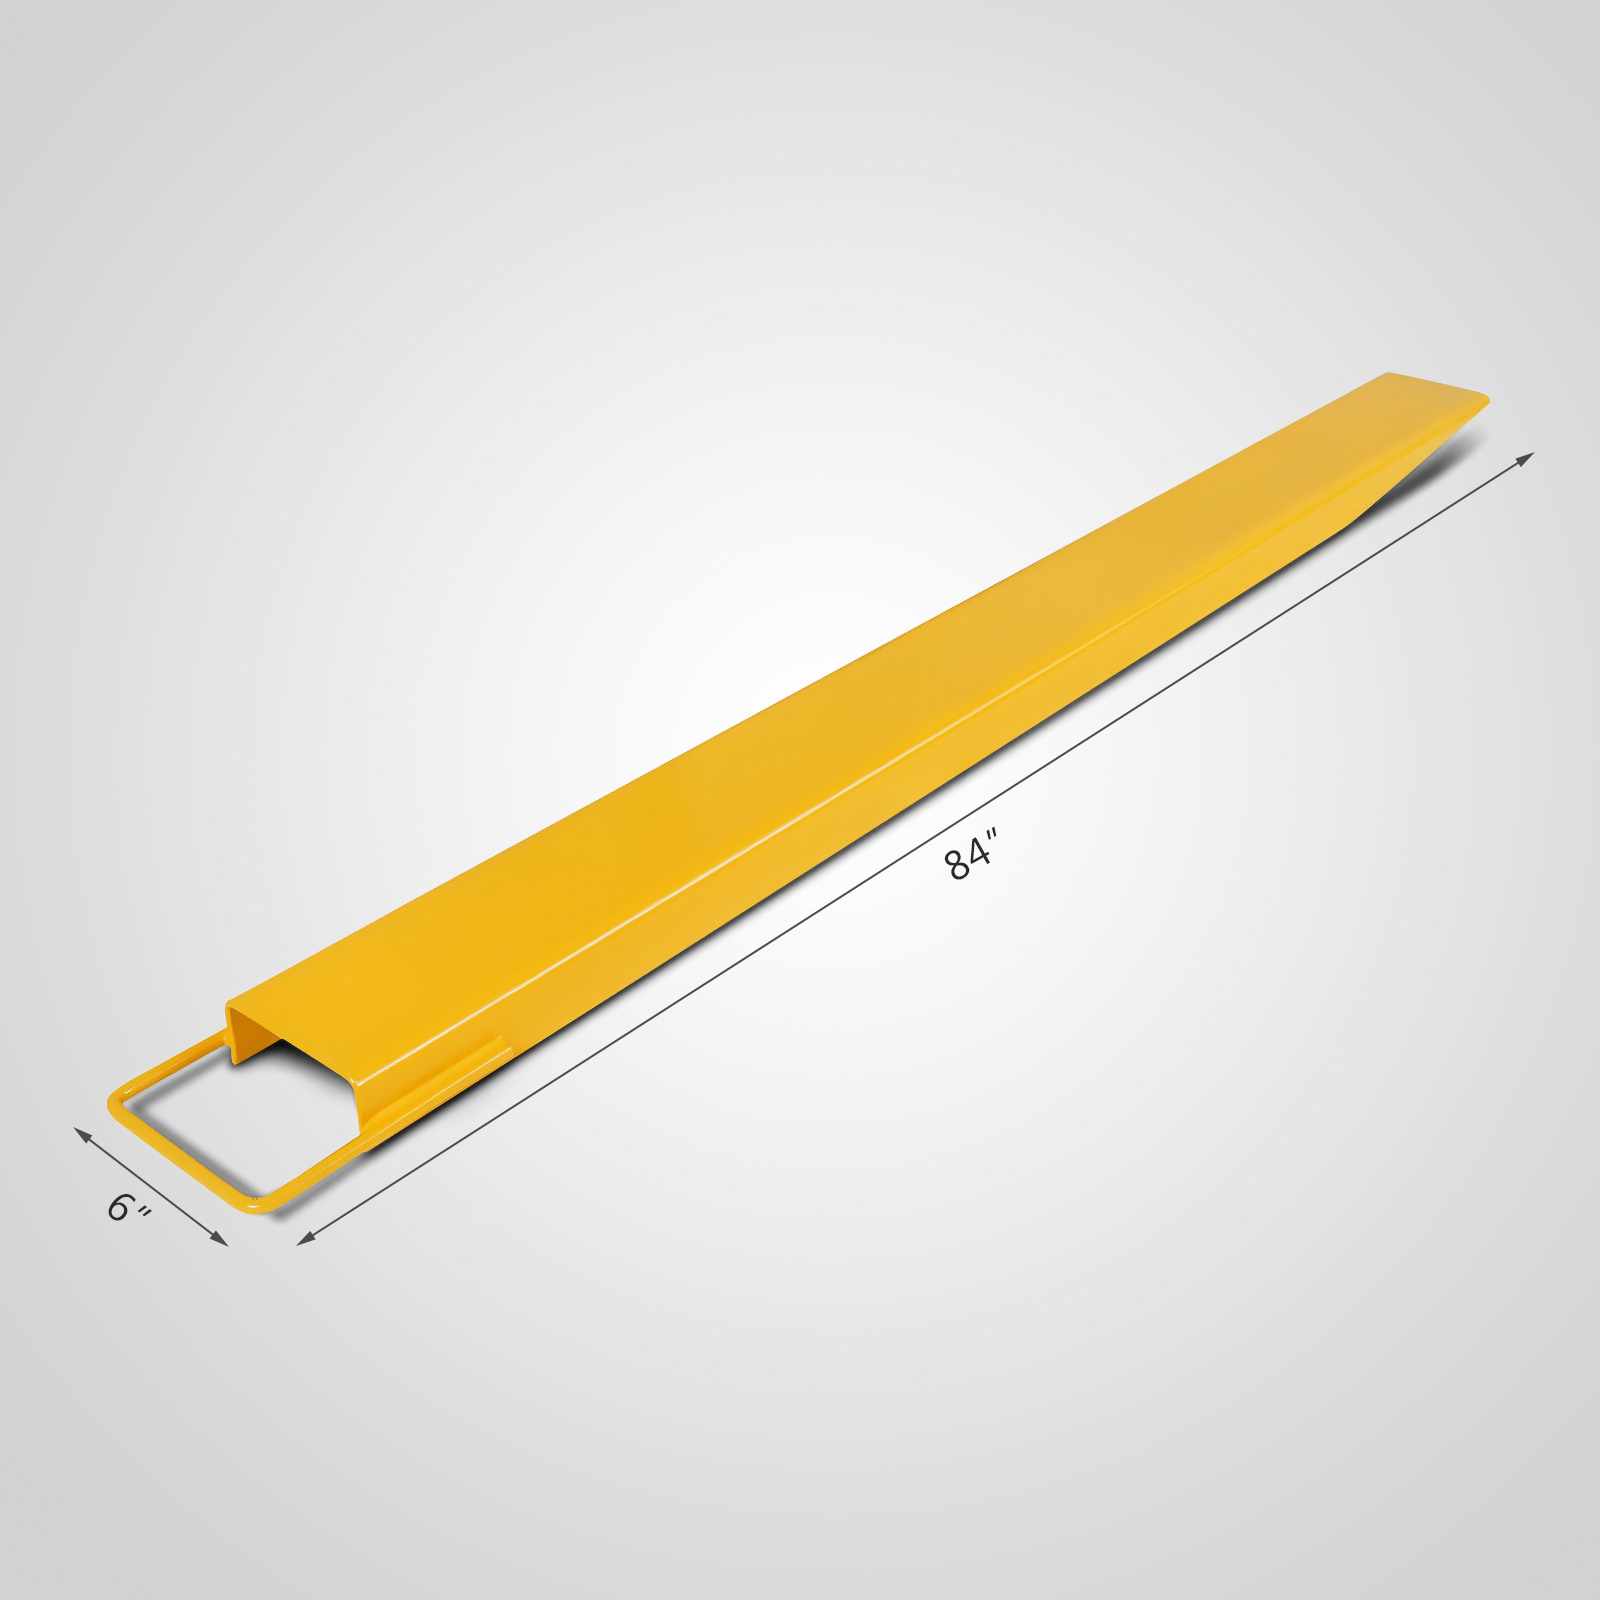 Heavy Duty Fork Lift Extensions : Quot x forklift pallet fork extensions pair heavy duty